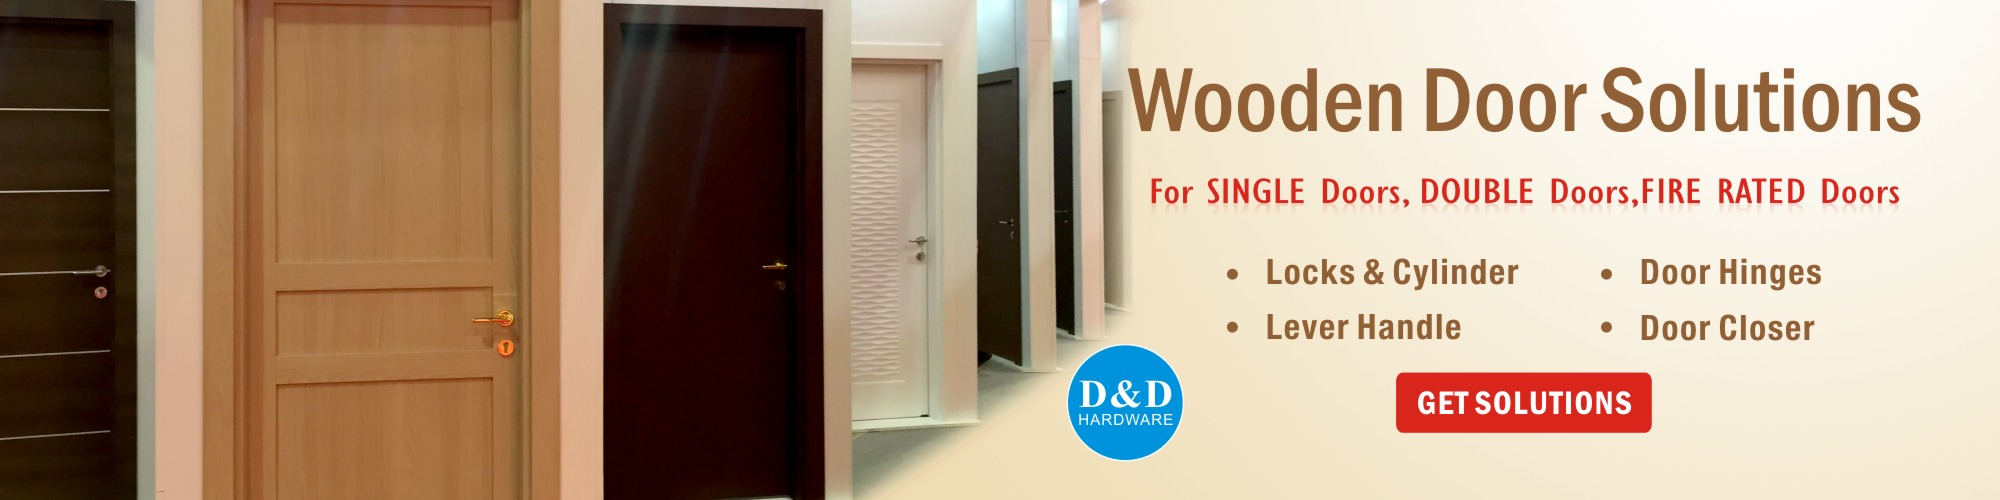 Wooden Door Solutions-D&D hardware